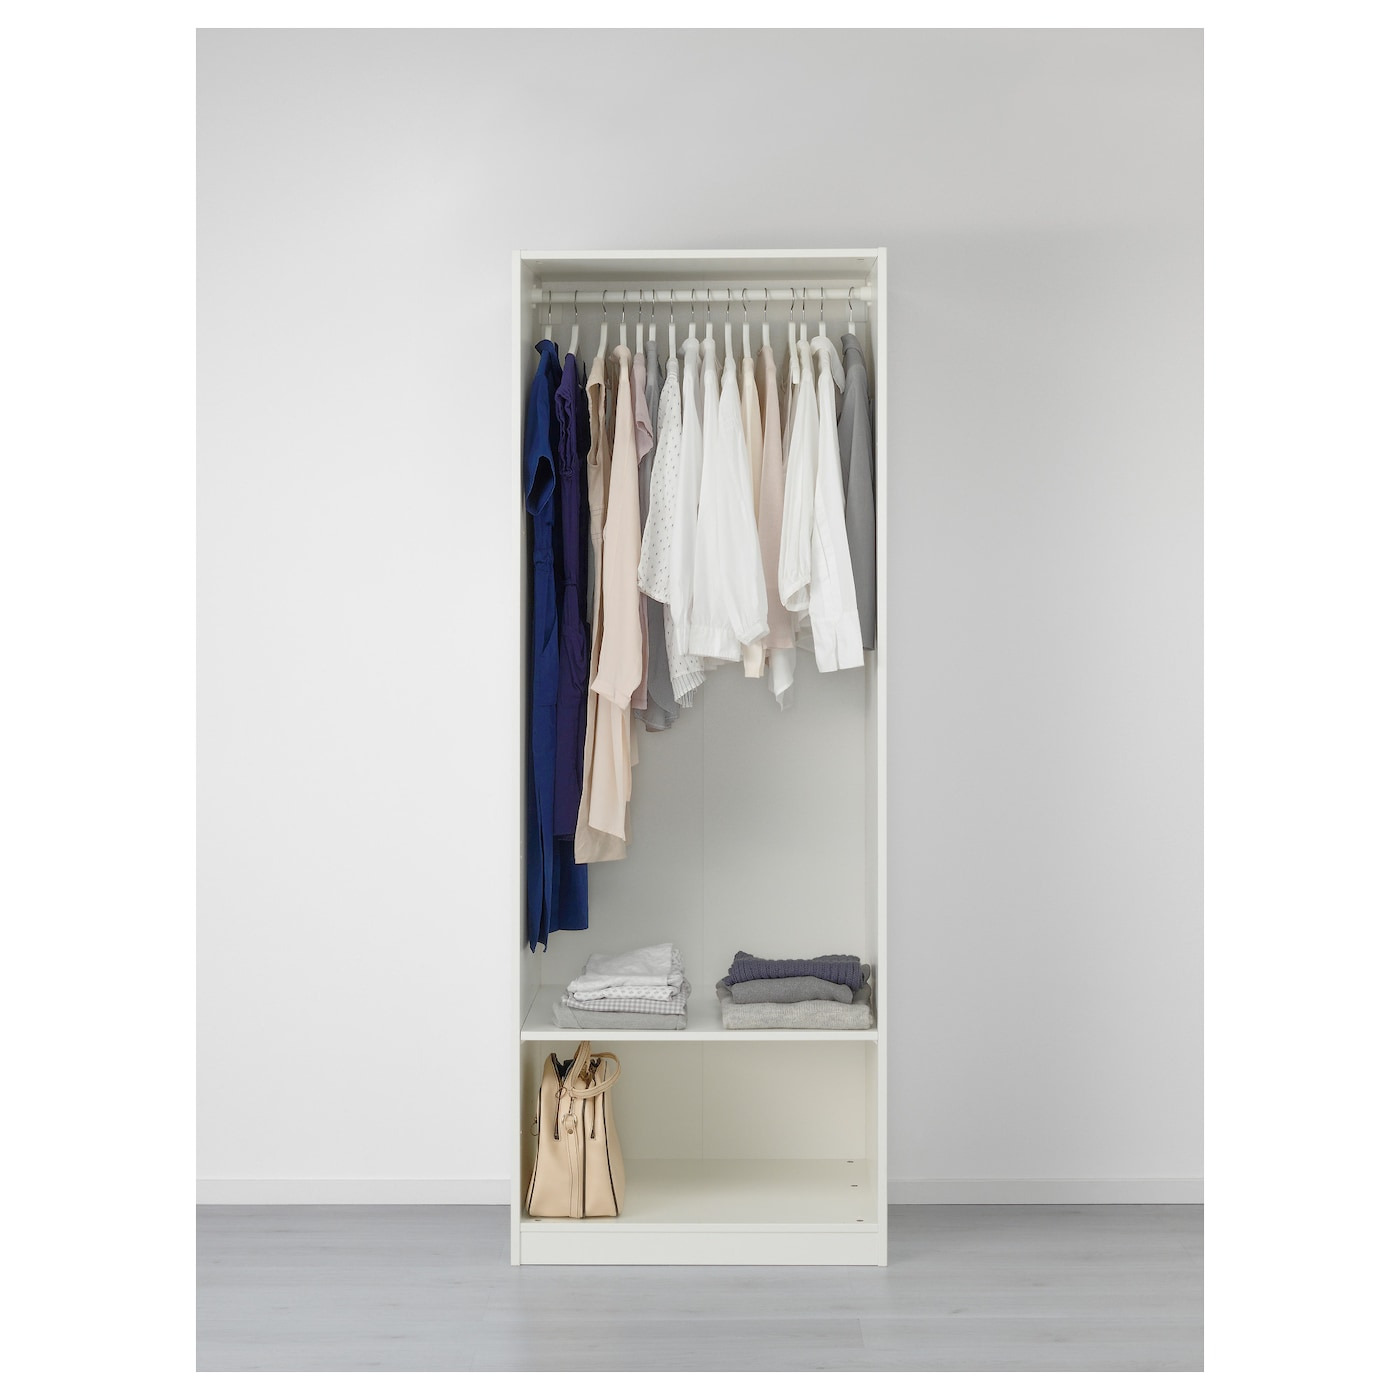 Design Ikea Closet pax wardrobe whitetanem vikedal 75x60x201 cm ikea 10 year guarantee read about the terms in brochure